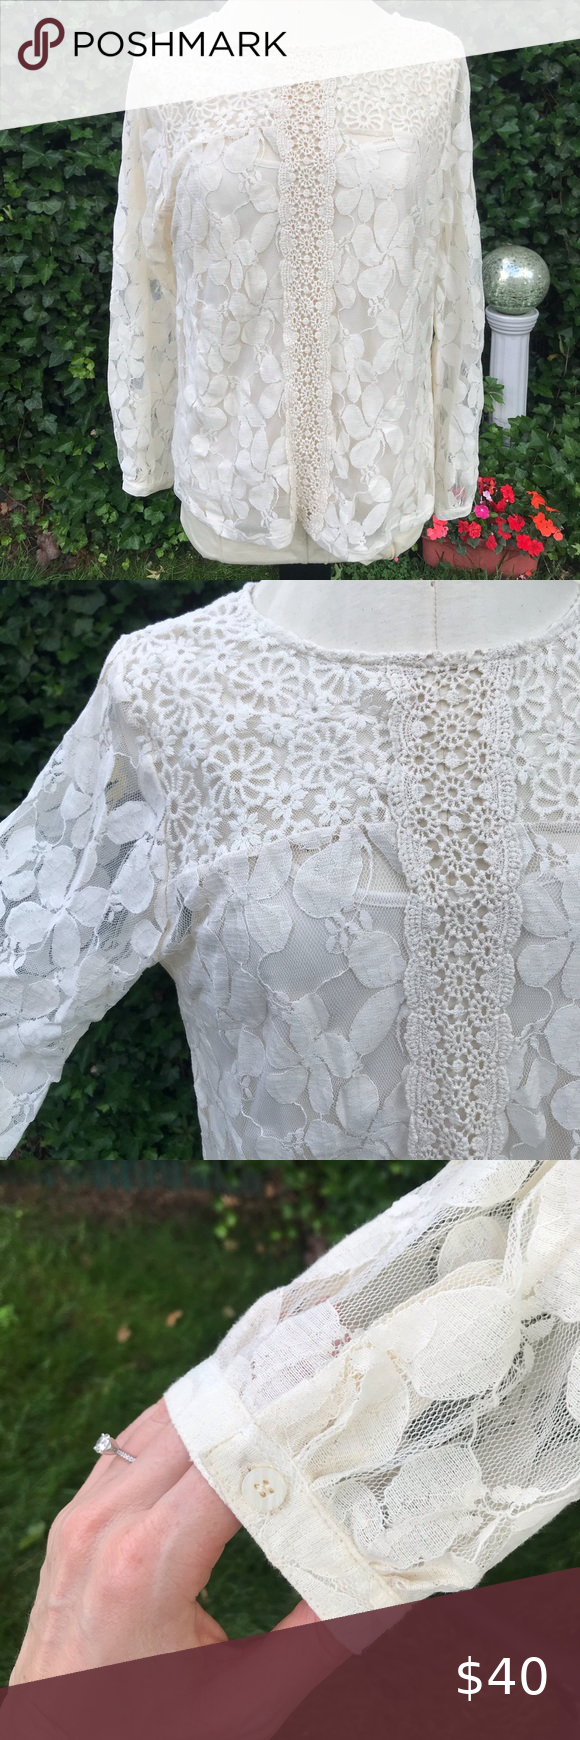 Nwt Adiva Lace Top Lace Blouse Long Sleeve White Lace Top Sleeveless Lace Top [ 1740 x 580 Pixel ]